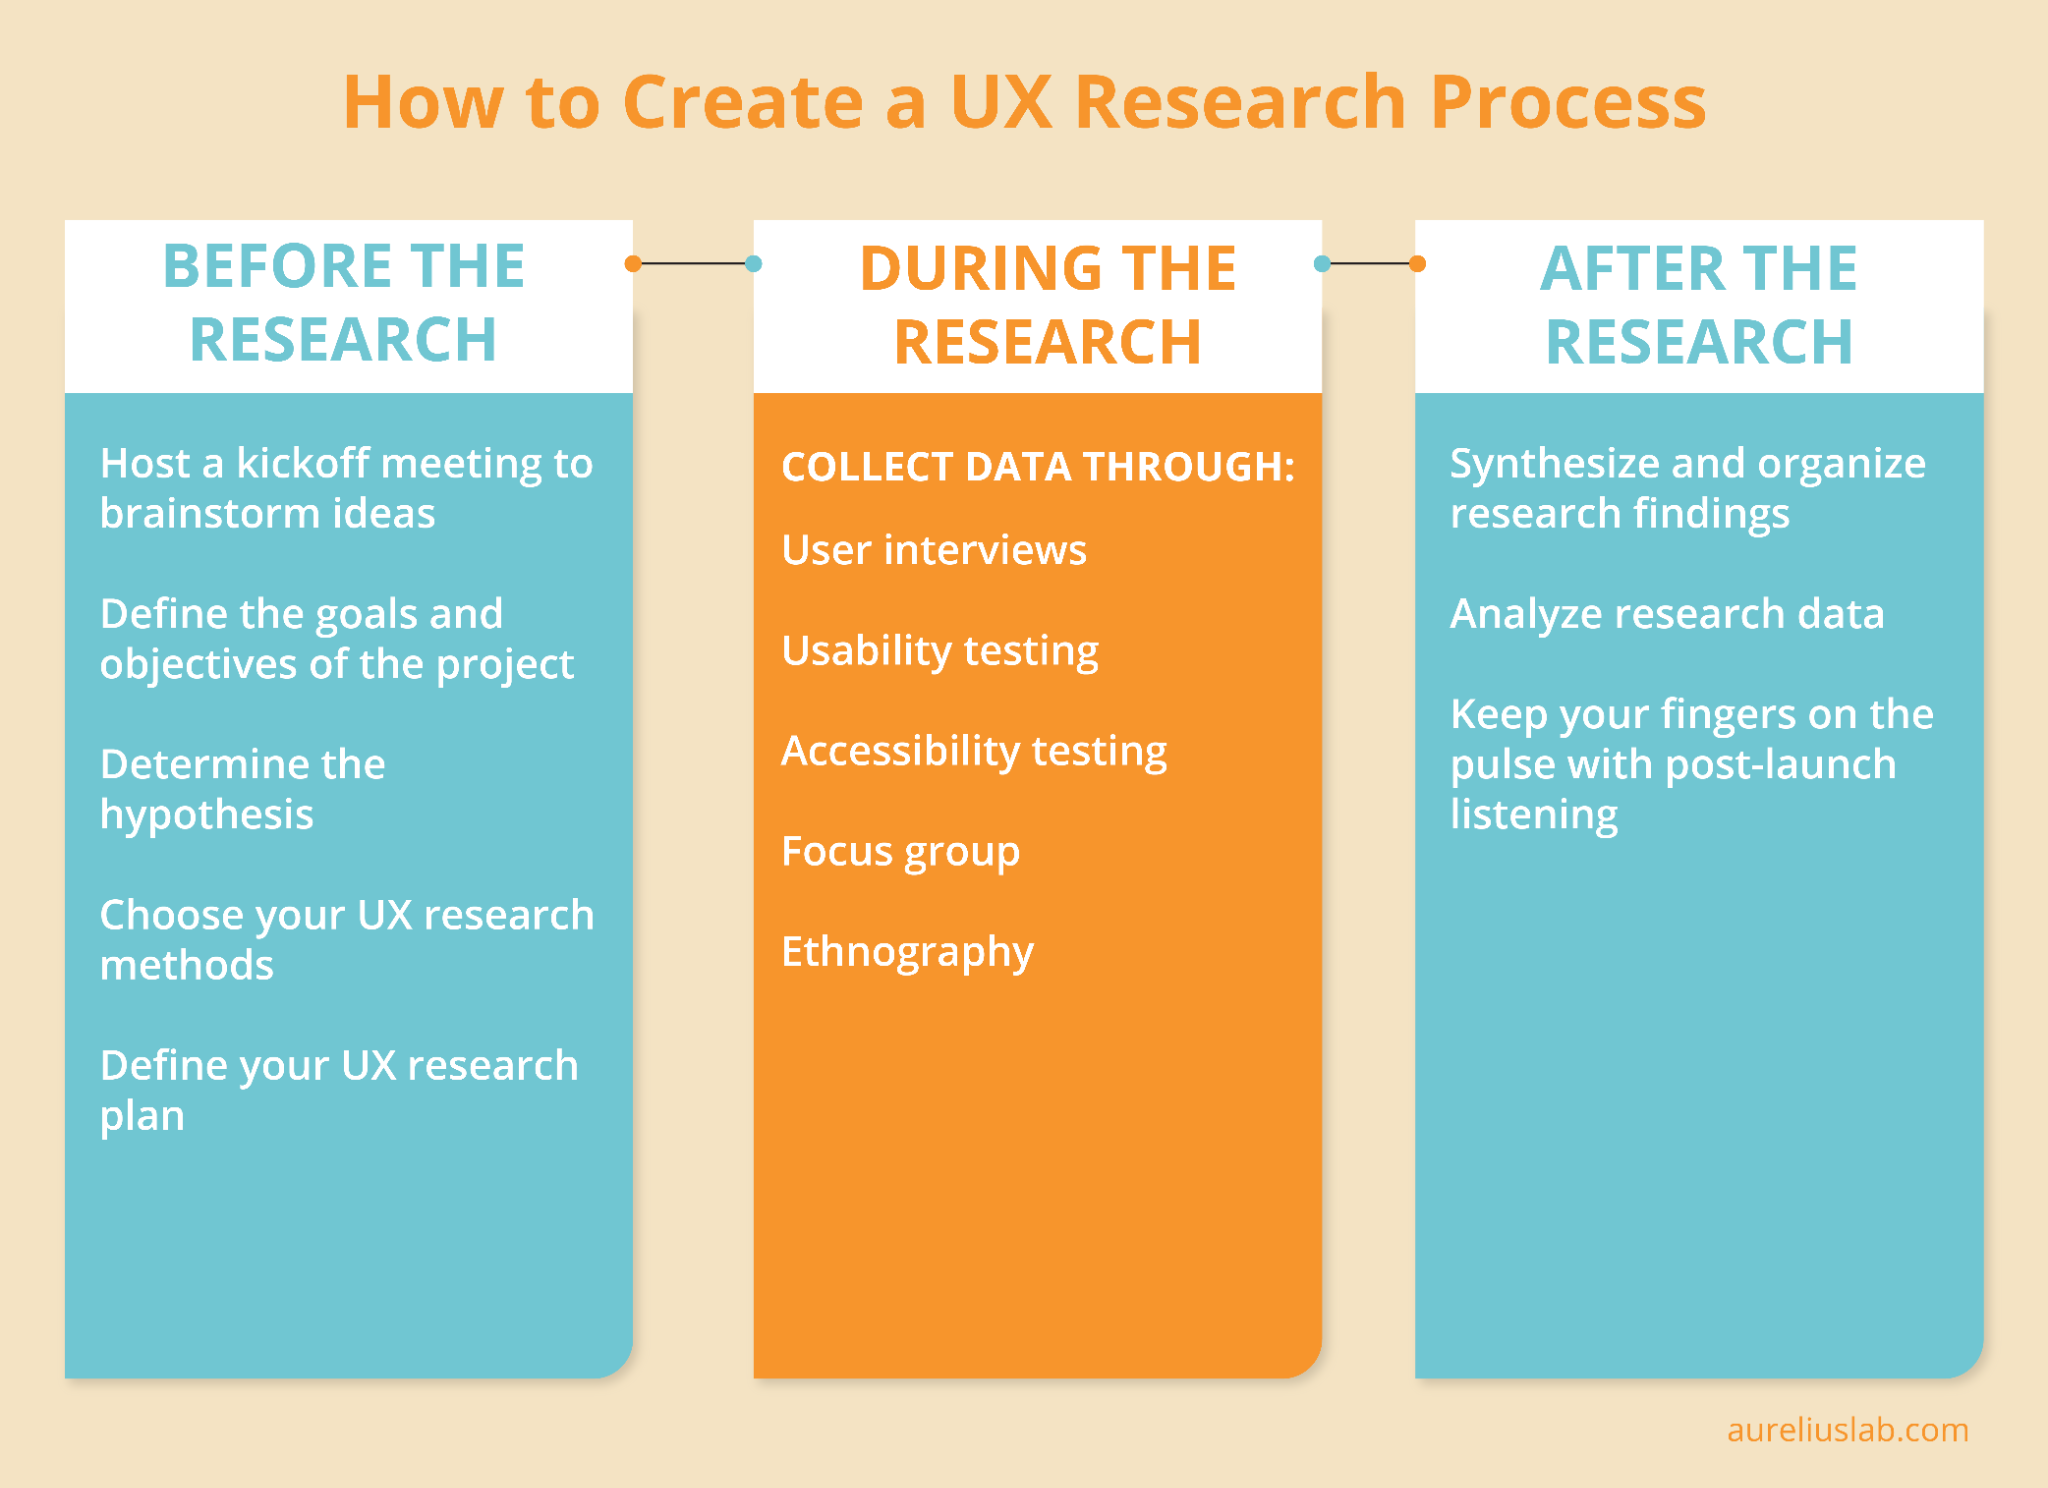 Steps of a UX research process